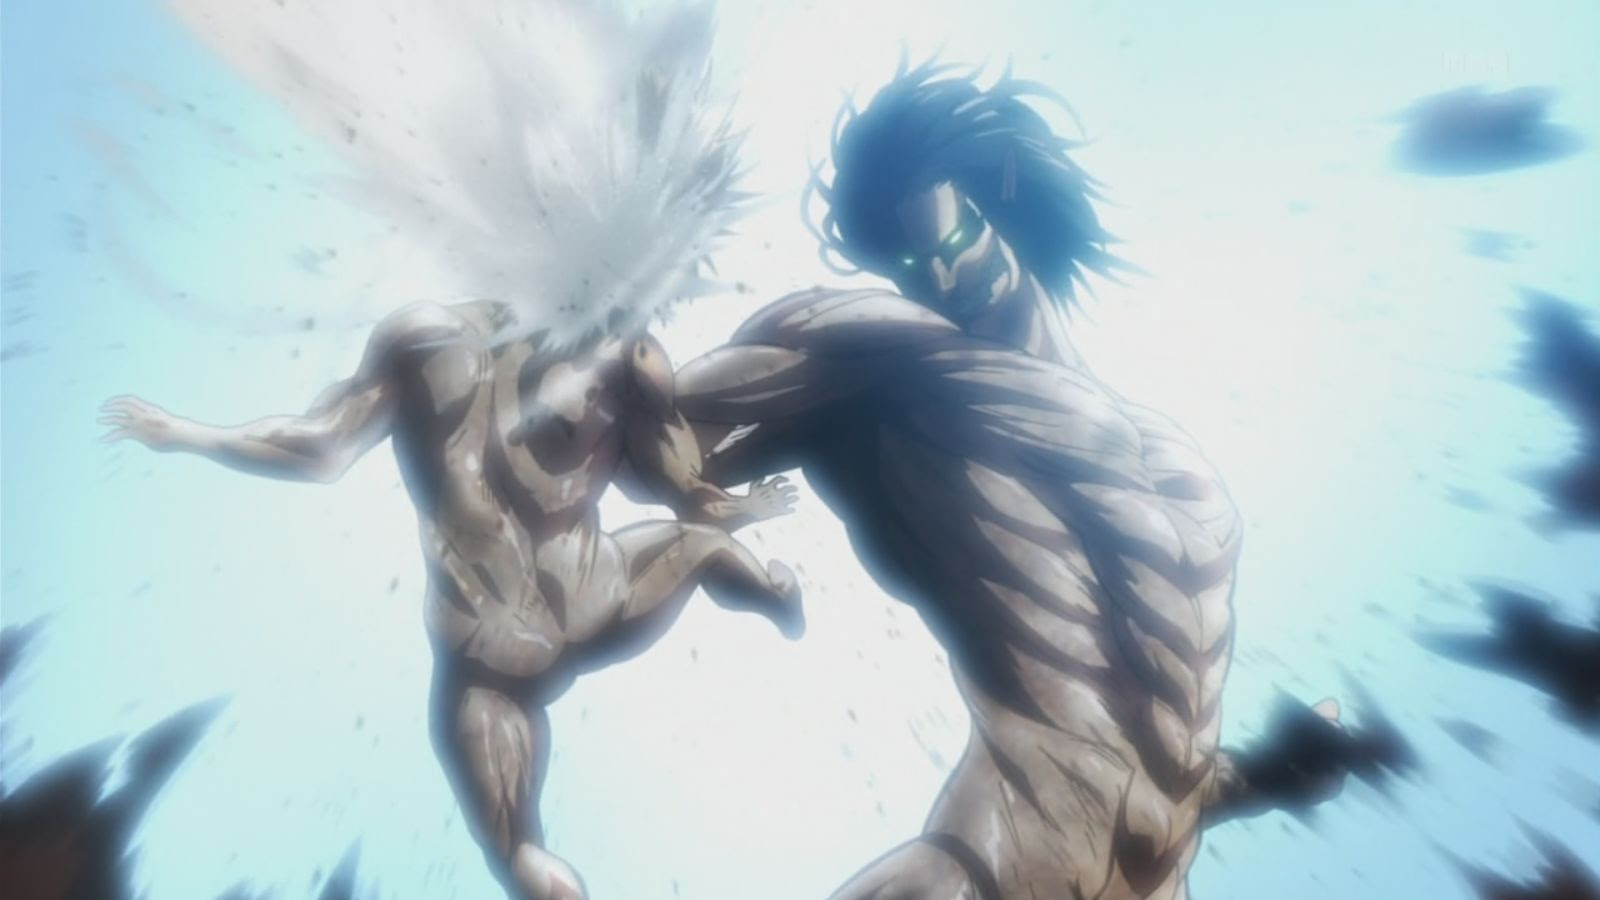 Anime Monday Attack On Titan Where The Left Arm Went